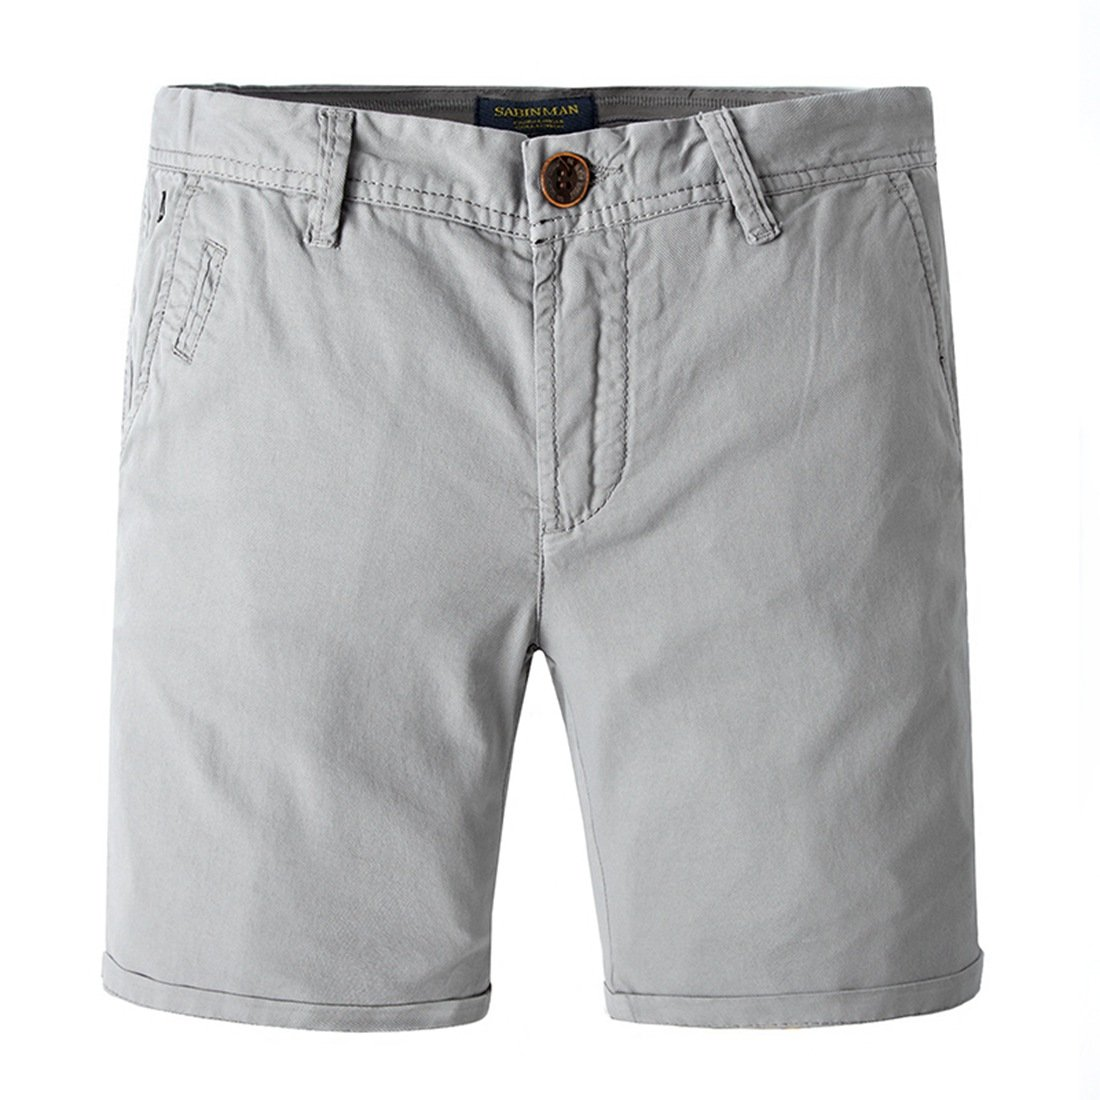 TBMPOY Men's Relaxed Fit Summer Board Solid Chino Deck Short(Light Grey,US 36)